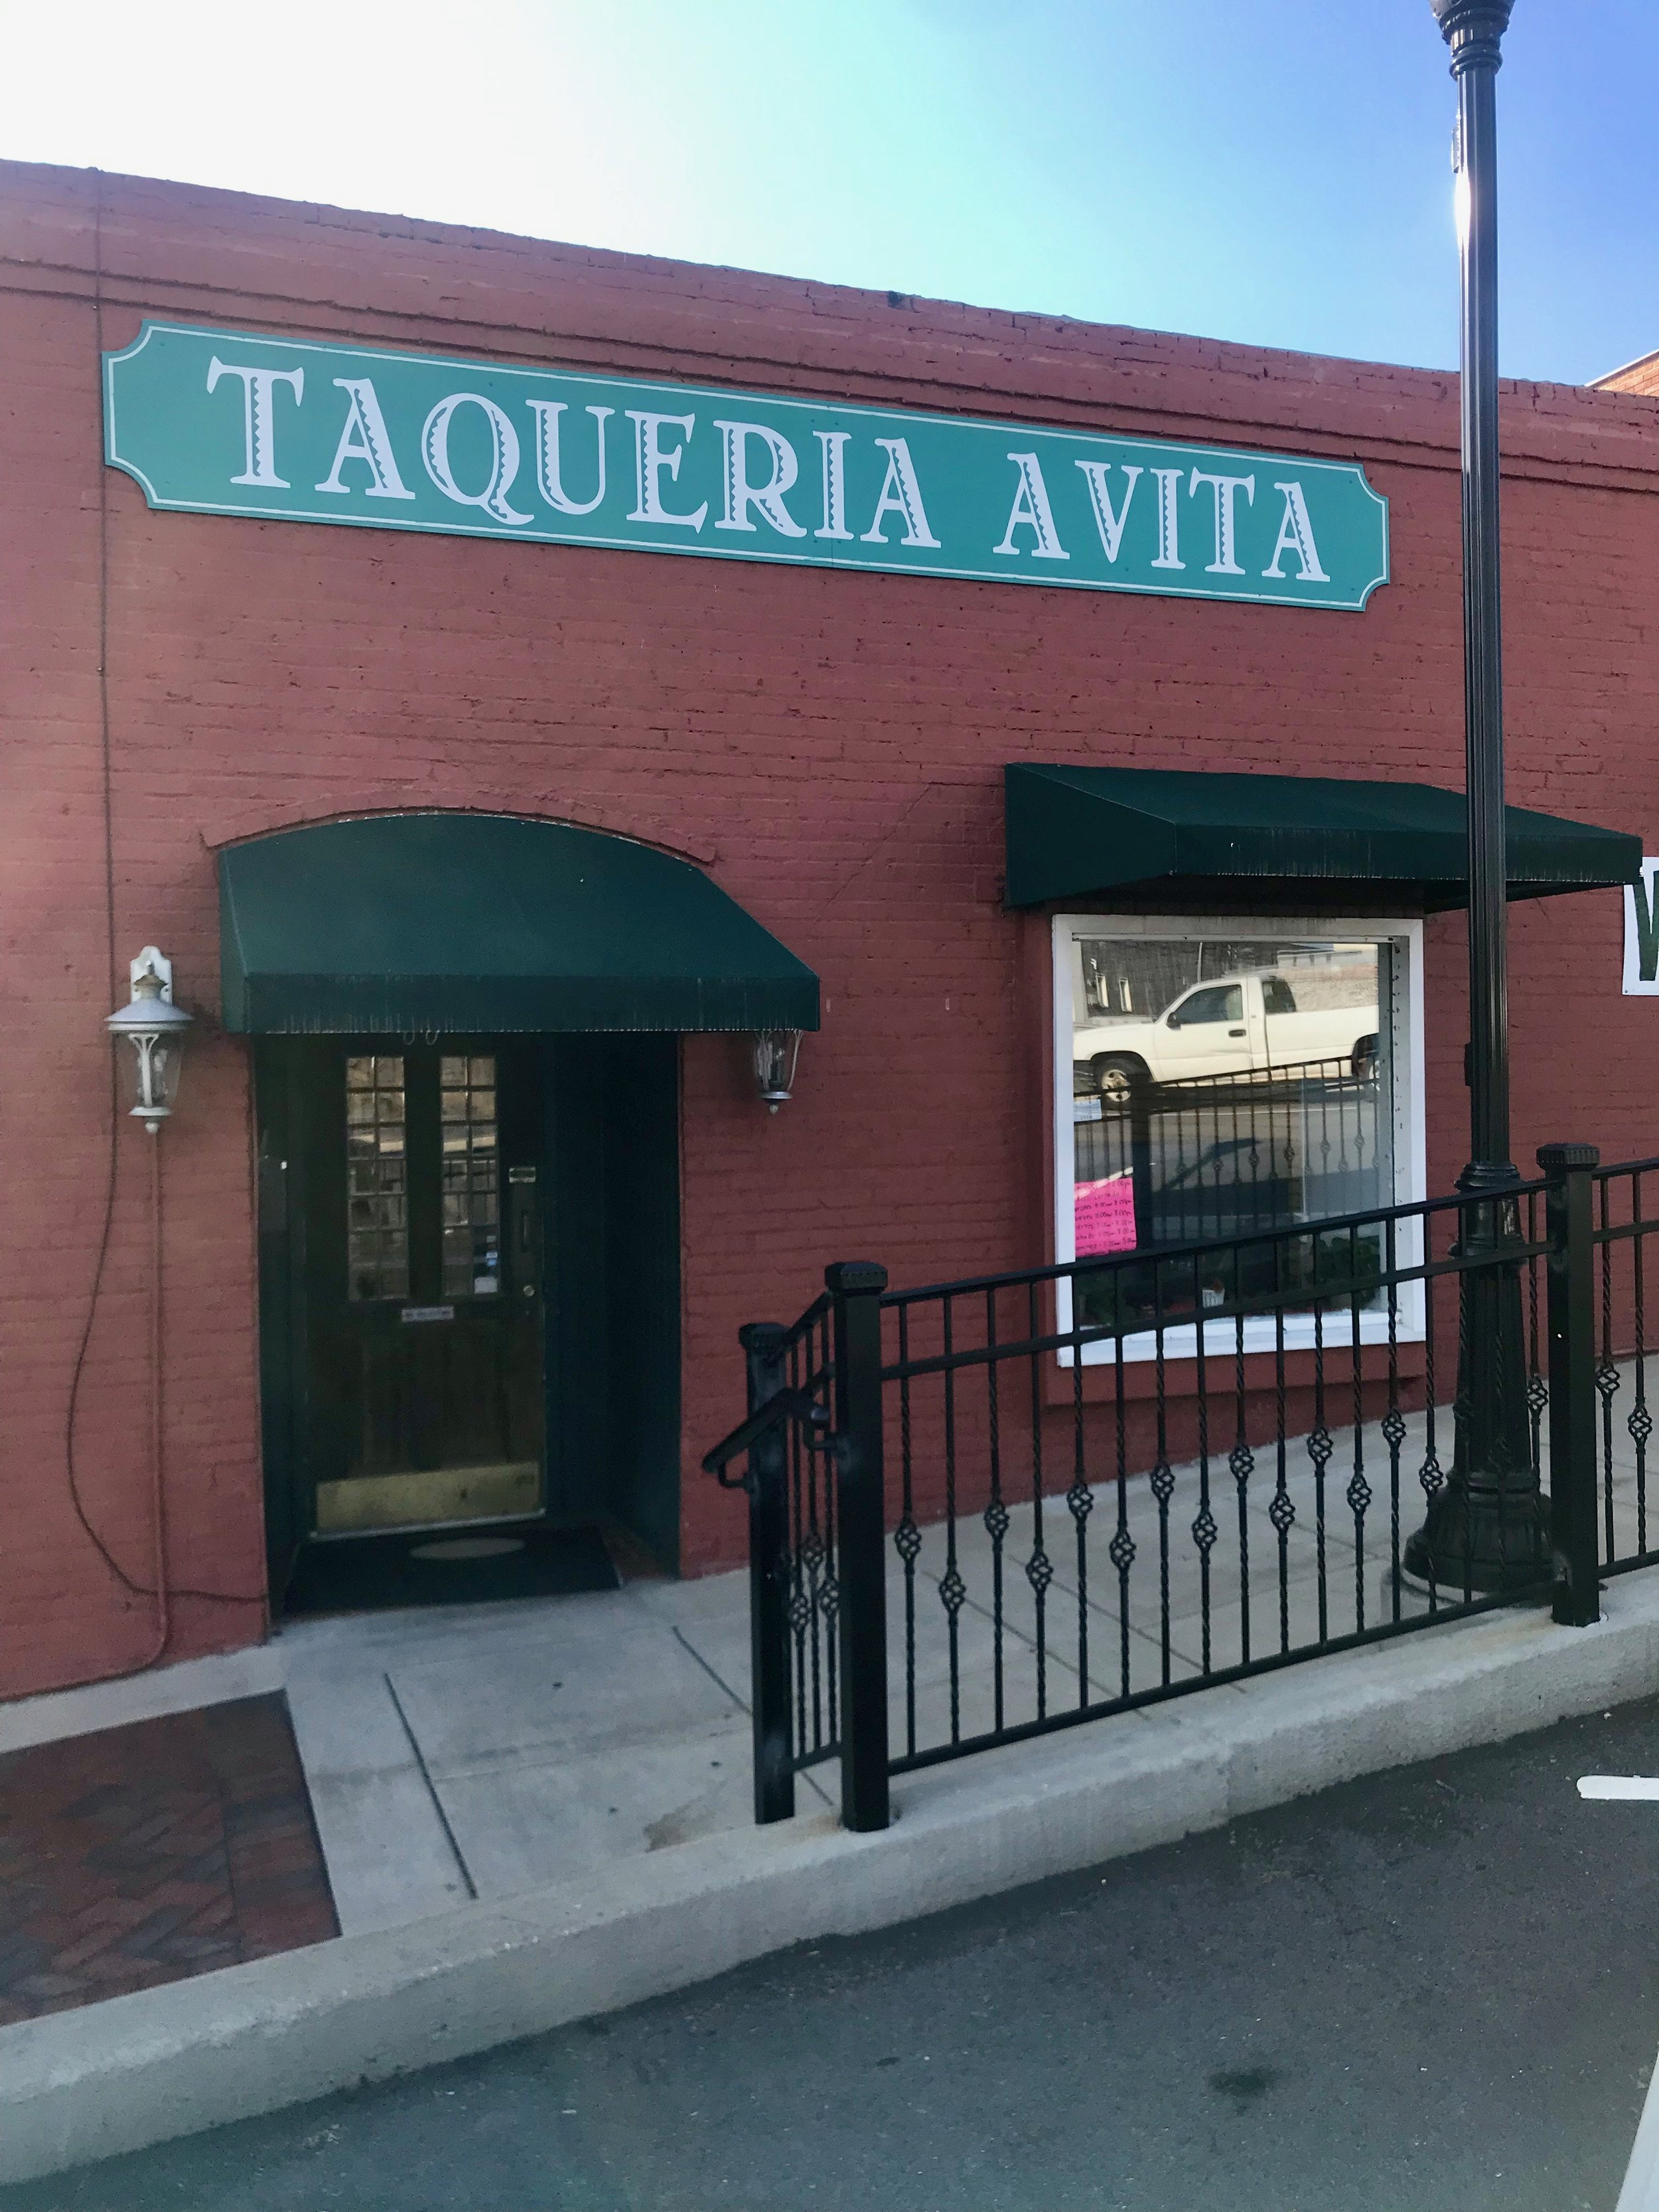 Featured Restaurant: TAQUERIA AVITA - Taqueria Avita is the newest restaurant in town and a must to check out. Authentic Mexican food is prepared with fresh ingredients when ordered. Located at 60 Broad Street, Alexander City. Open Monday thru Saturday 10 am - 8 pm and Sunday till 5:00 pmIt is oh muy Bueno!!!